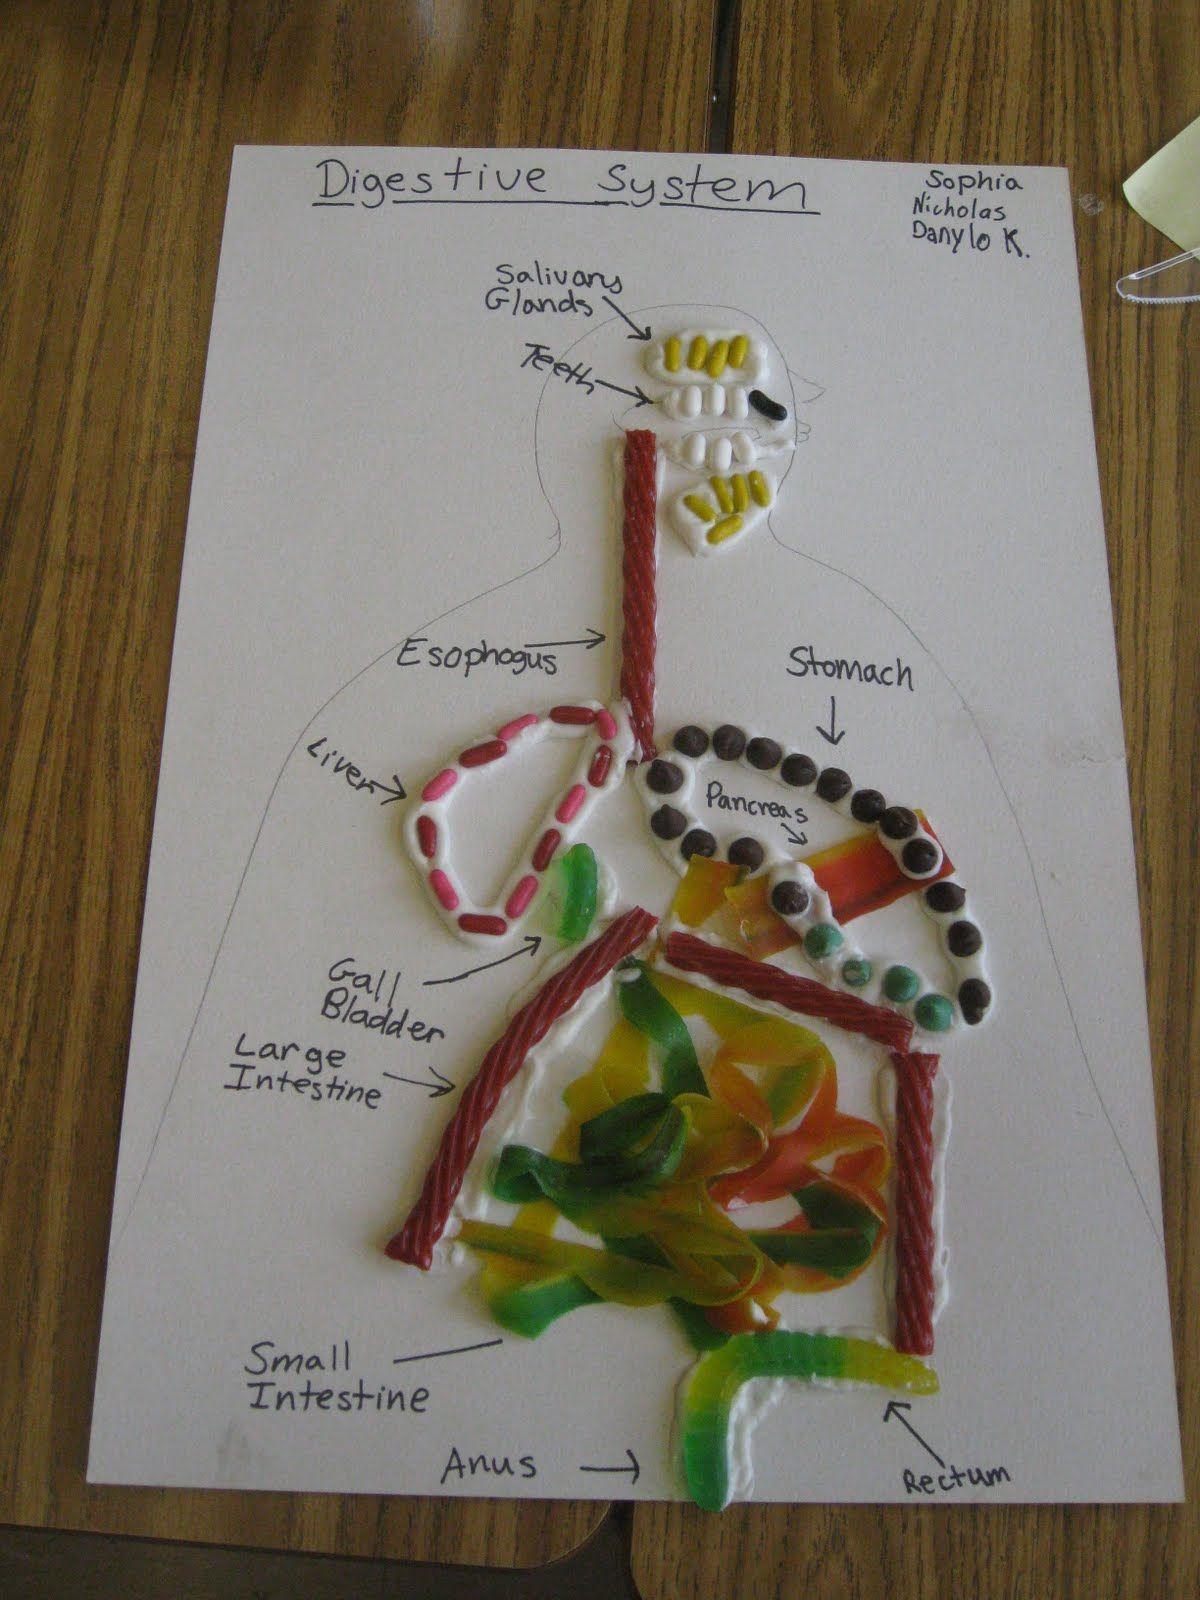 My Science Classroom: Edible Digestive Systems | Science ...